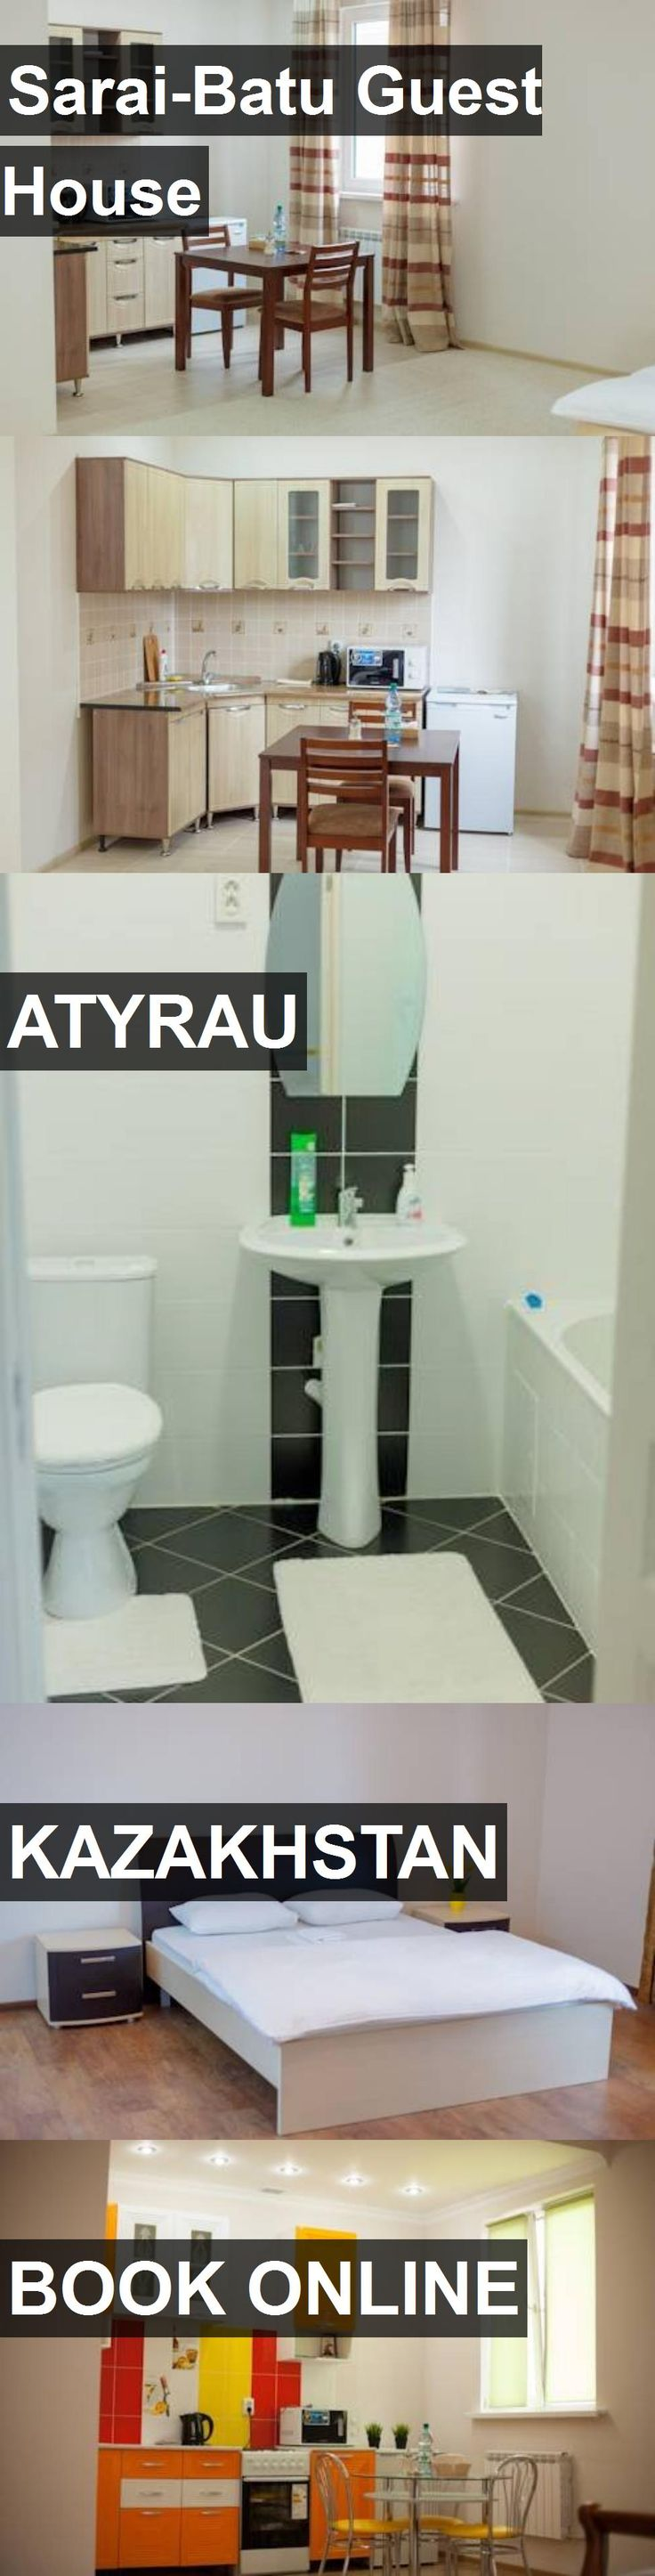 Sarai-Batu Guest House in Atyrau, Kazakhstan. For more information, photos, reviews and best prices please follow the link. #Kazakhstan #Atyrau #travel #vacation #guesthouse